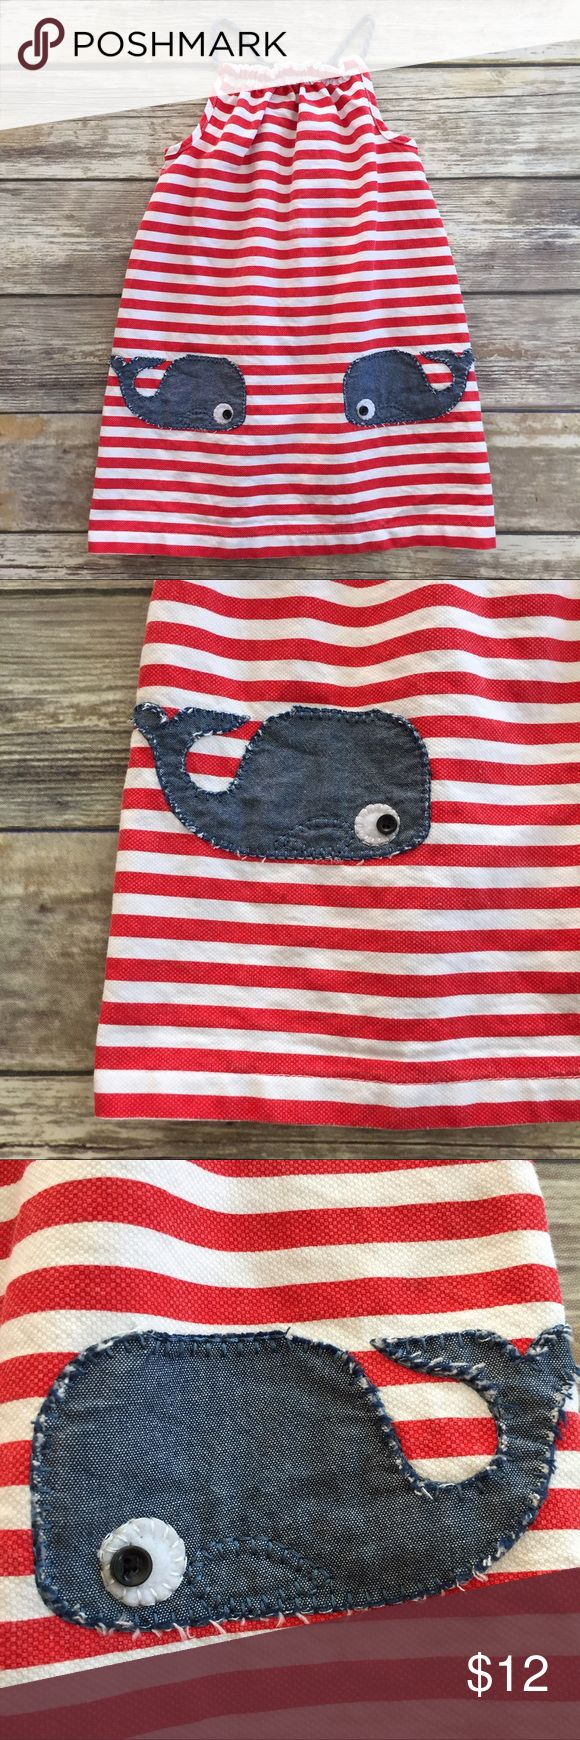 Mud Pie Whale Dress Red and white striped dress with whale appliqués on the front. Good condition for a small faded spot on the front. Dress definitely runs on the smaller side of more like a size 4/5. Mud Pie Dresses